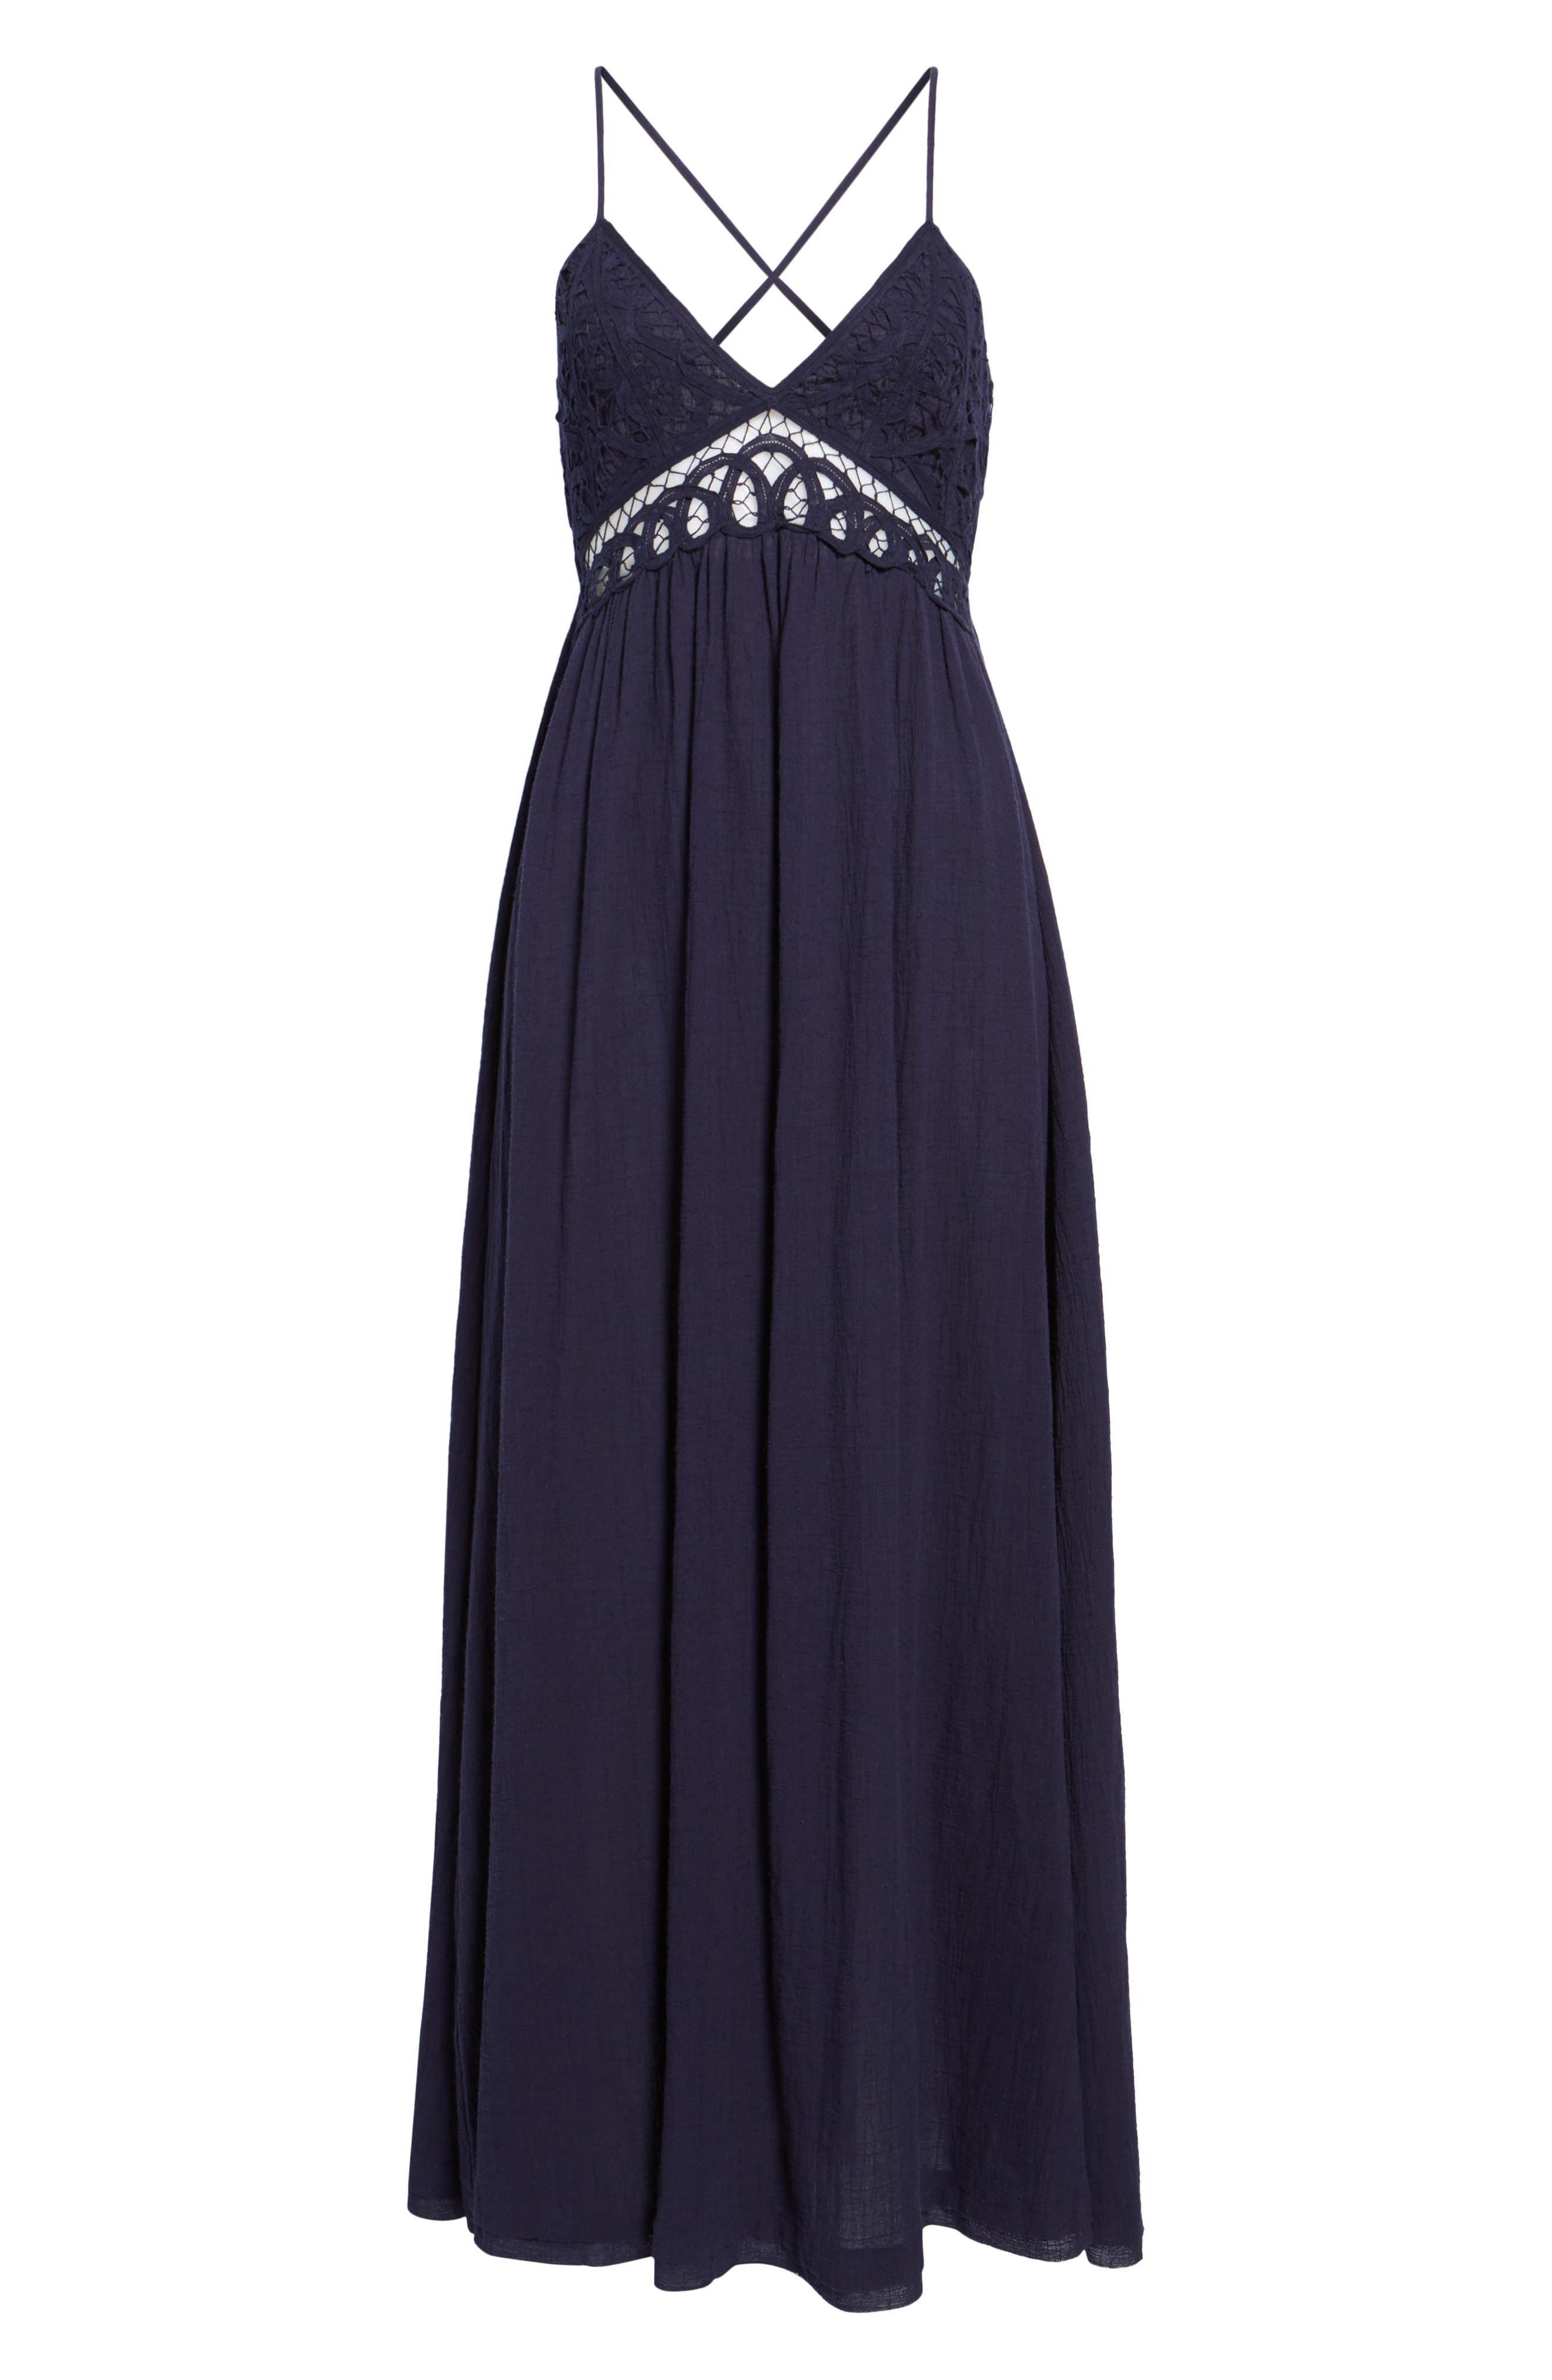 Lace Inset Empire Waist Maxi Dress,                             Alternate thumbnail 7, color,                             Navy